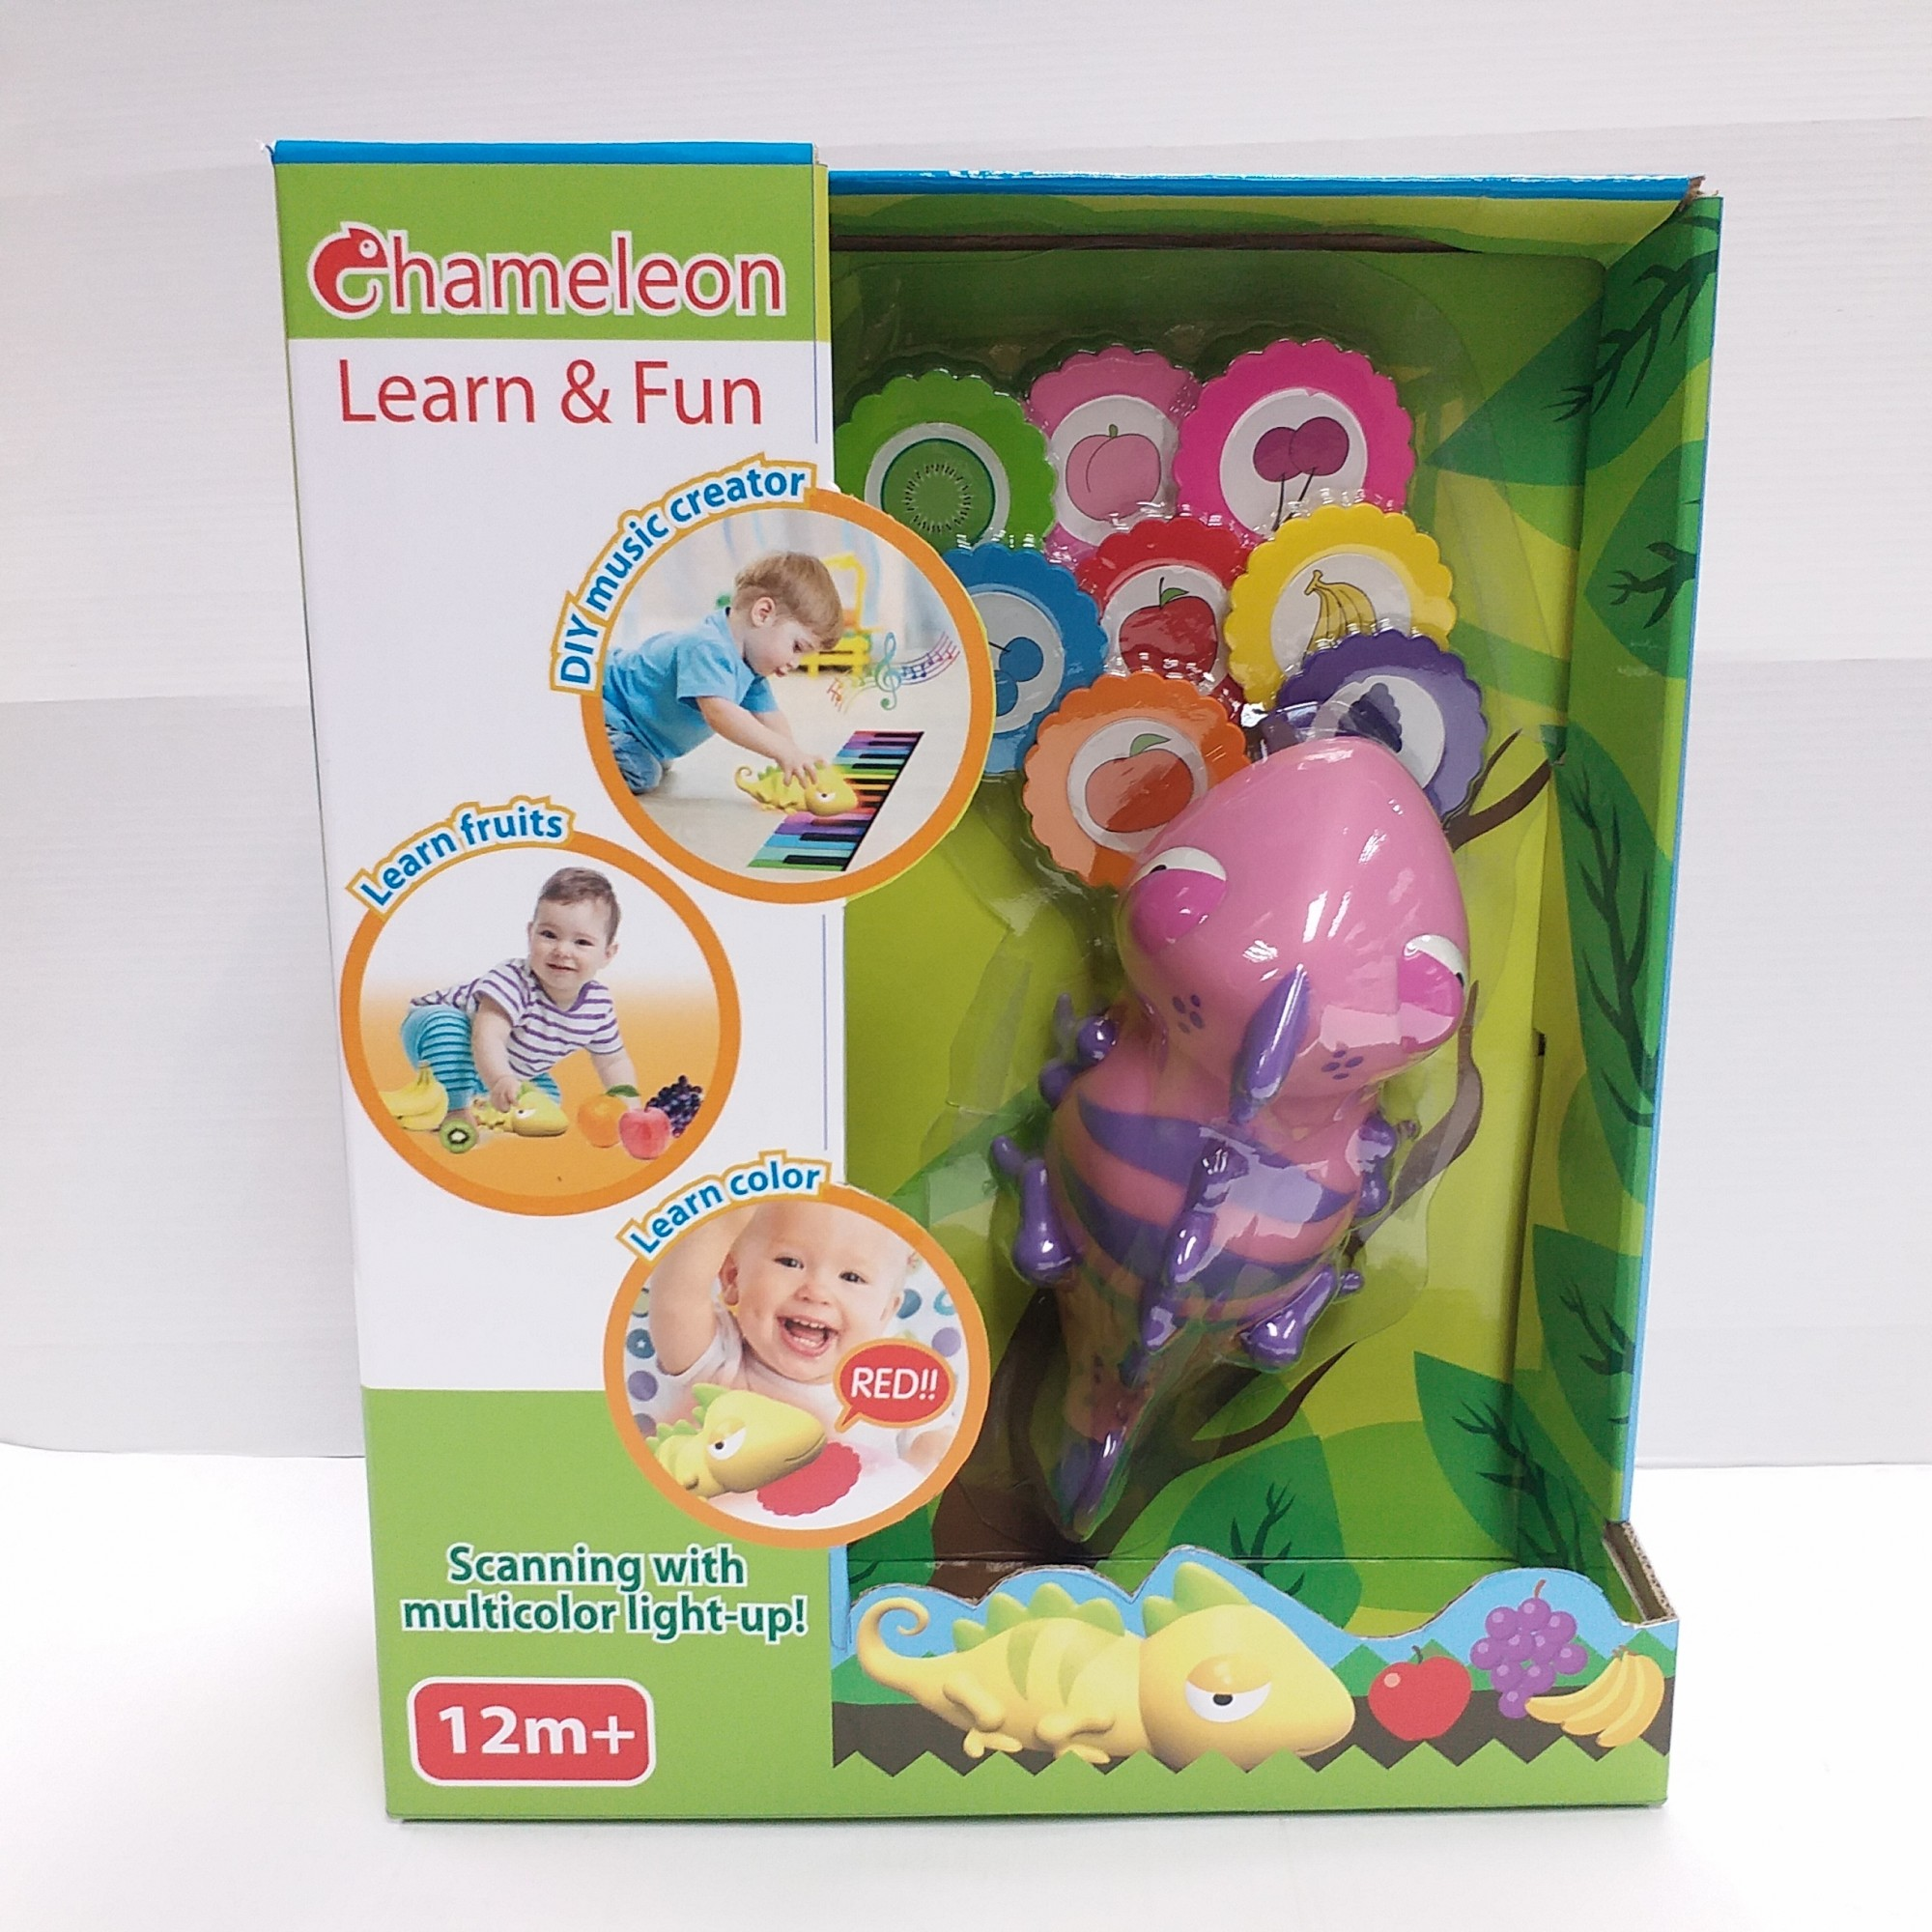 Chameleon Fun & Learn